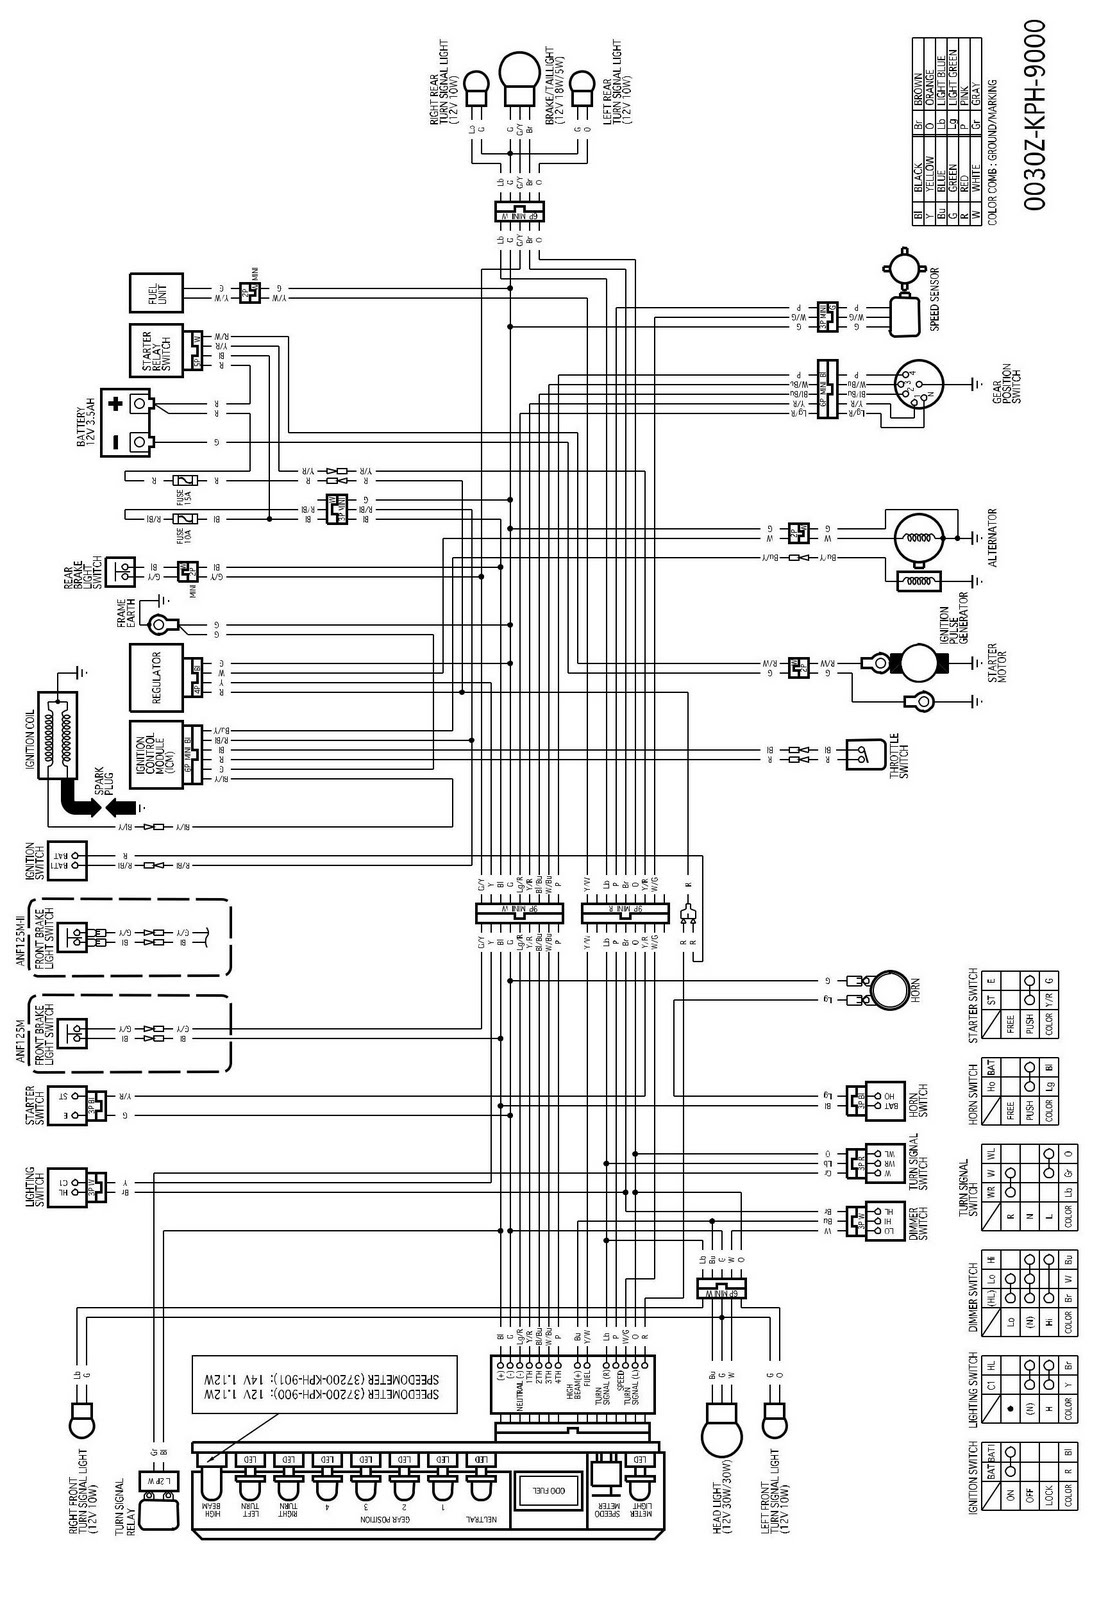 Car Styles Structural Diagram Elektronic Honda